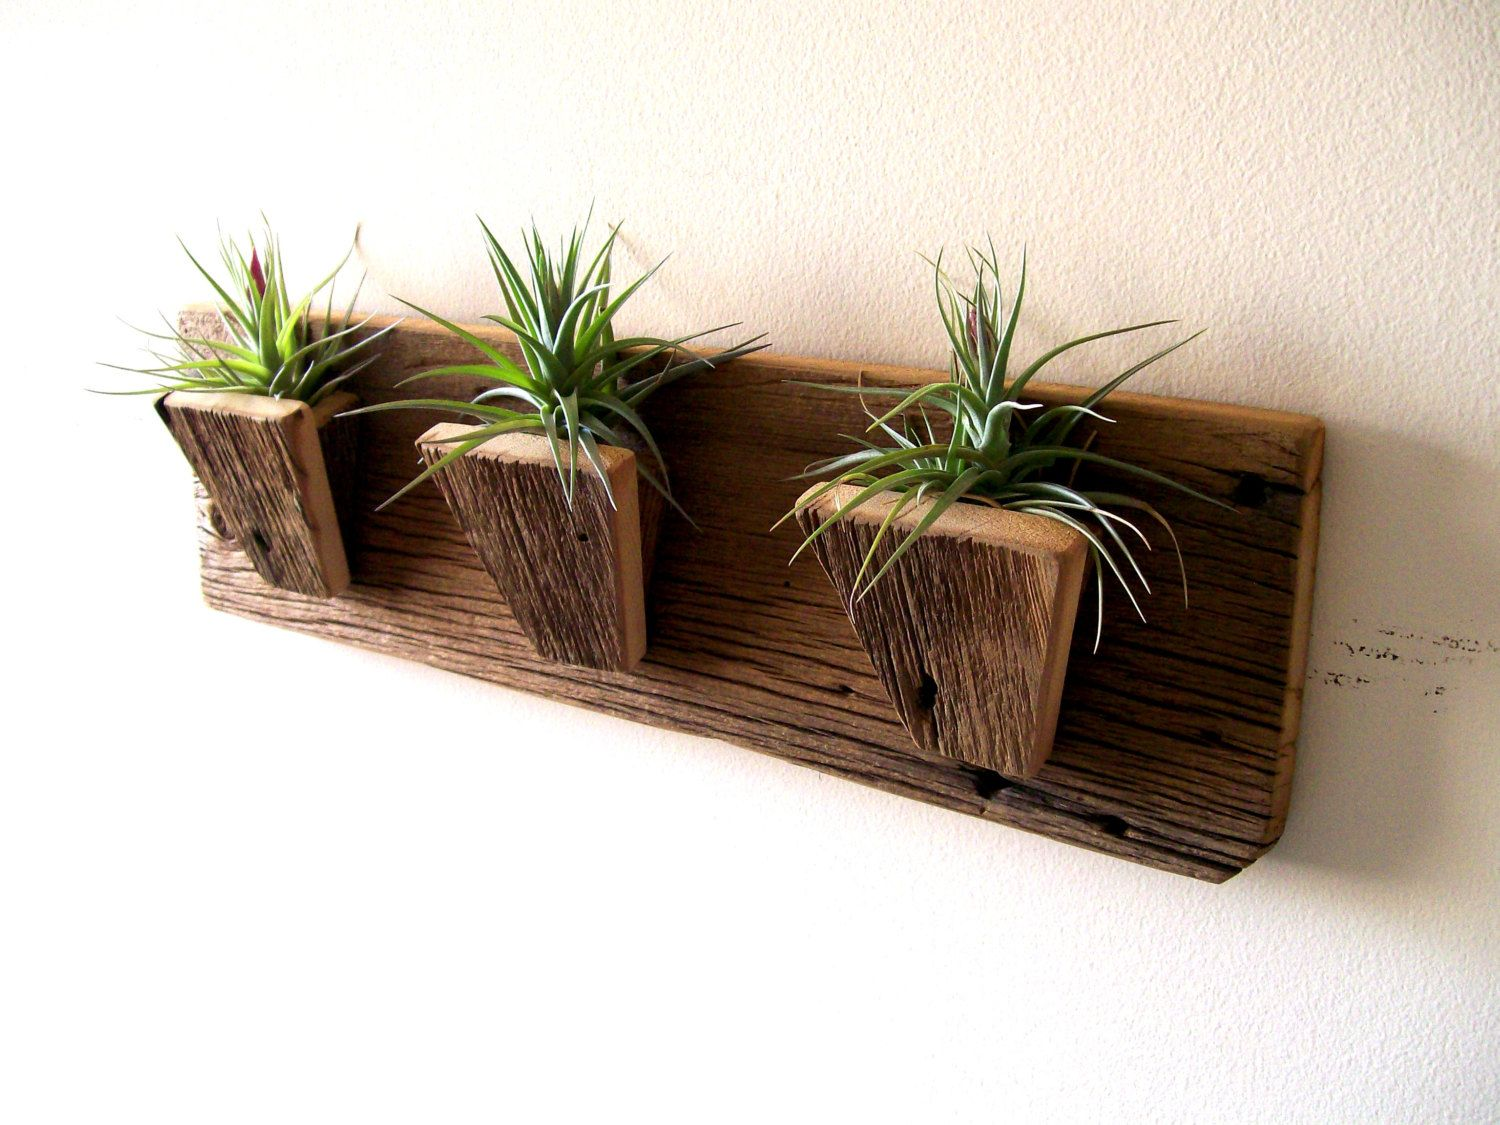 Wall Hanging Plants Air Plant Holder Planters Tillandsia Air Plants Reclaimed